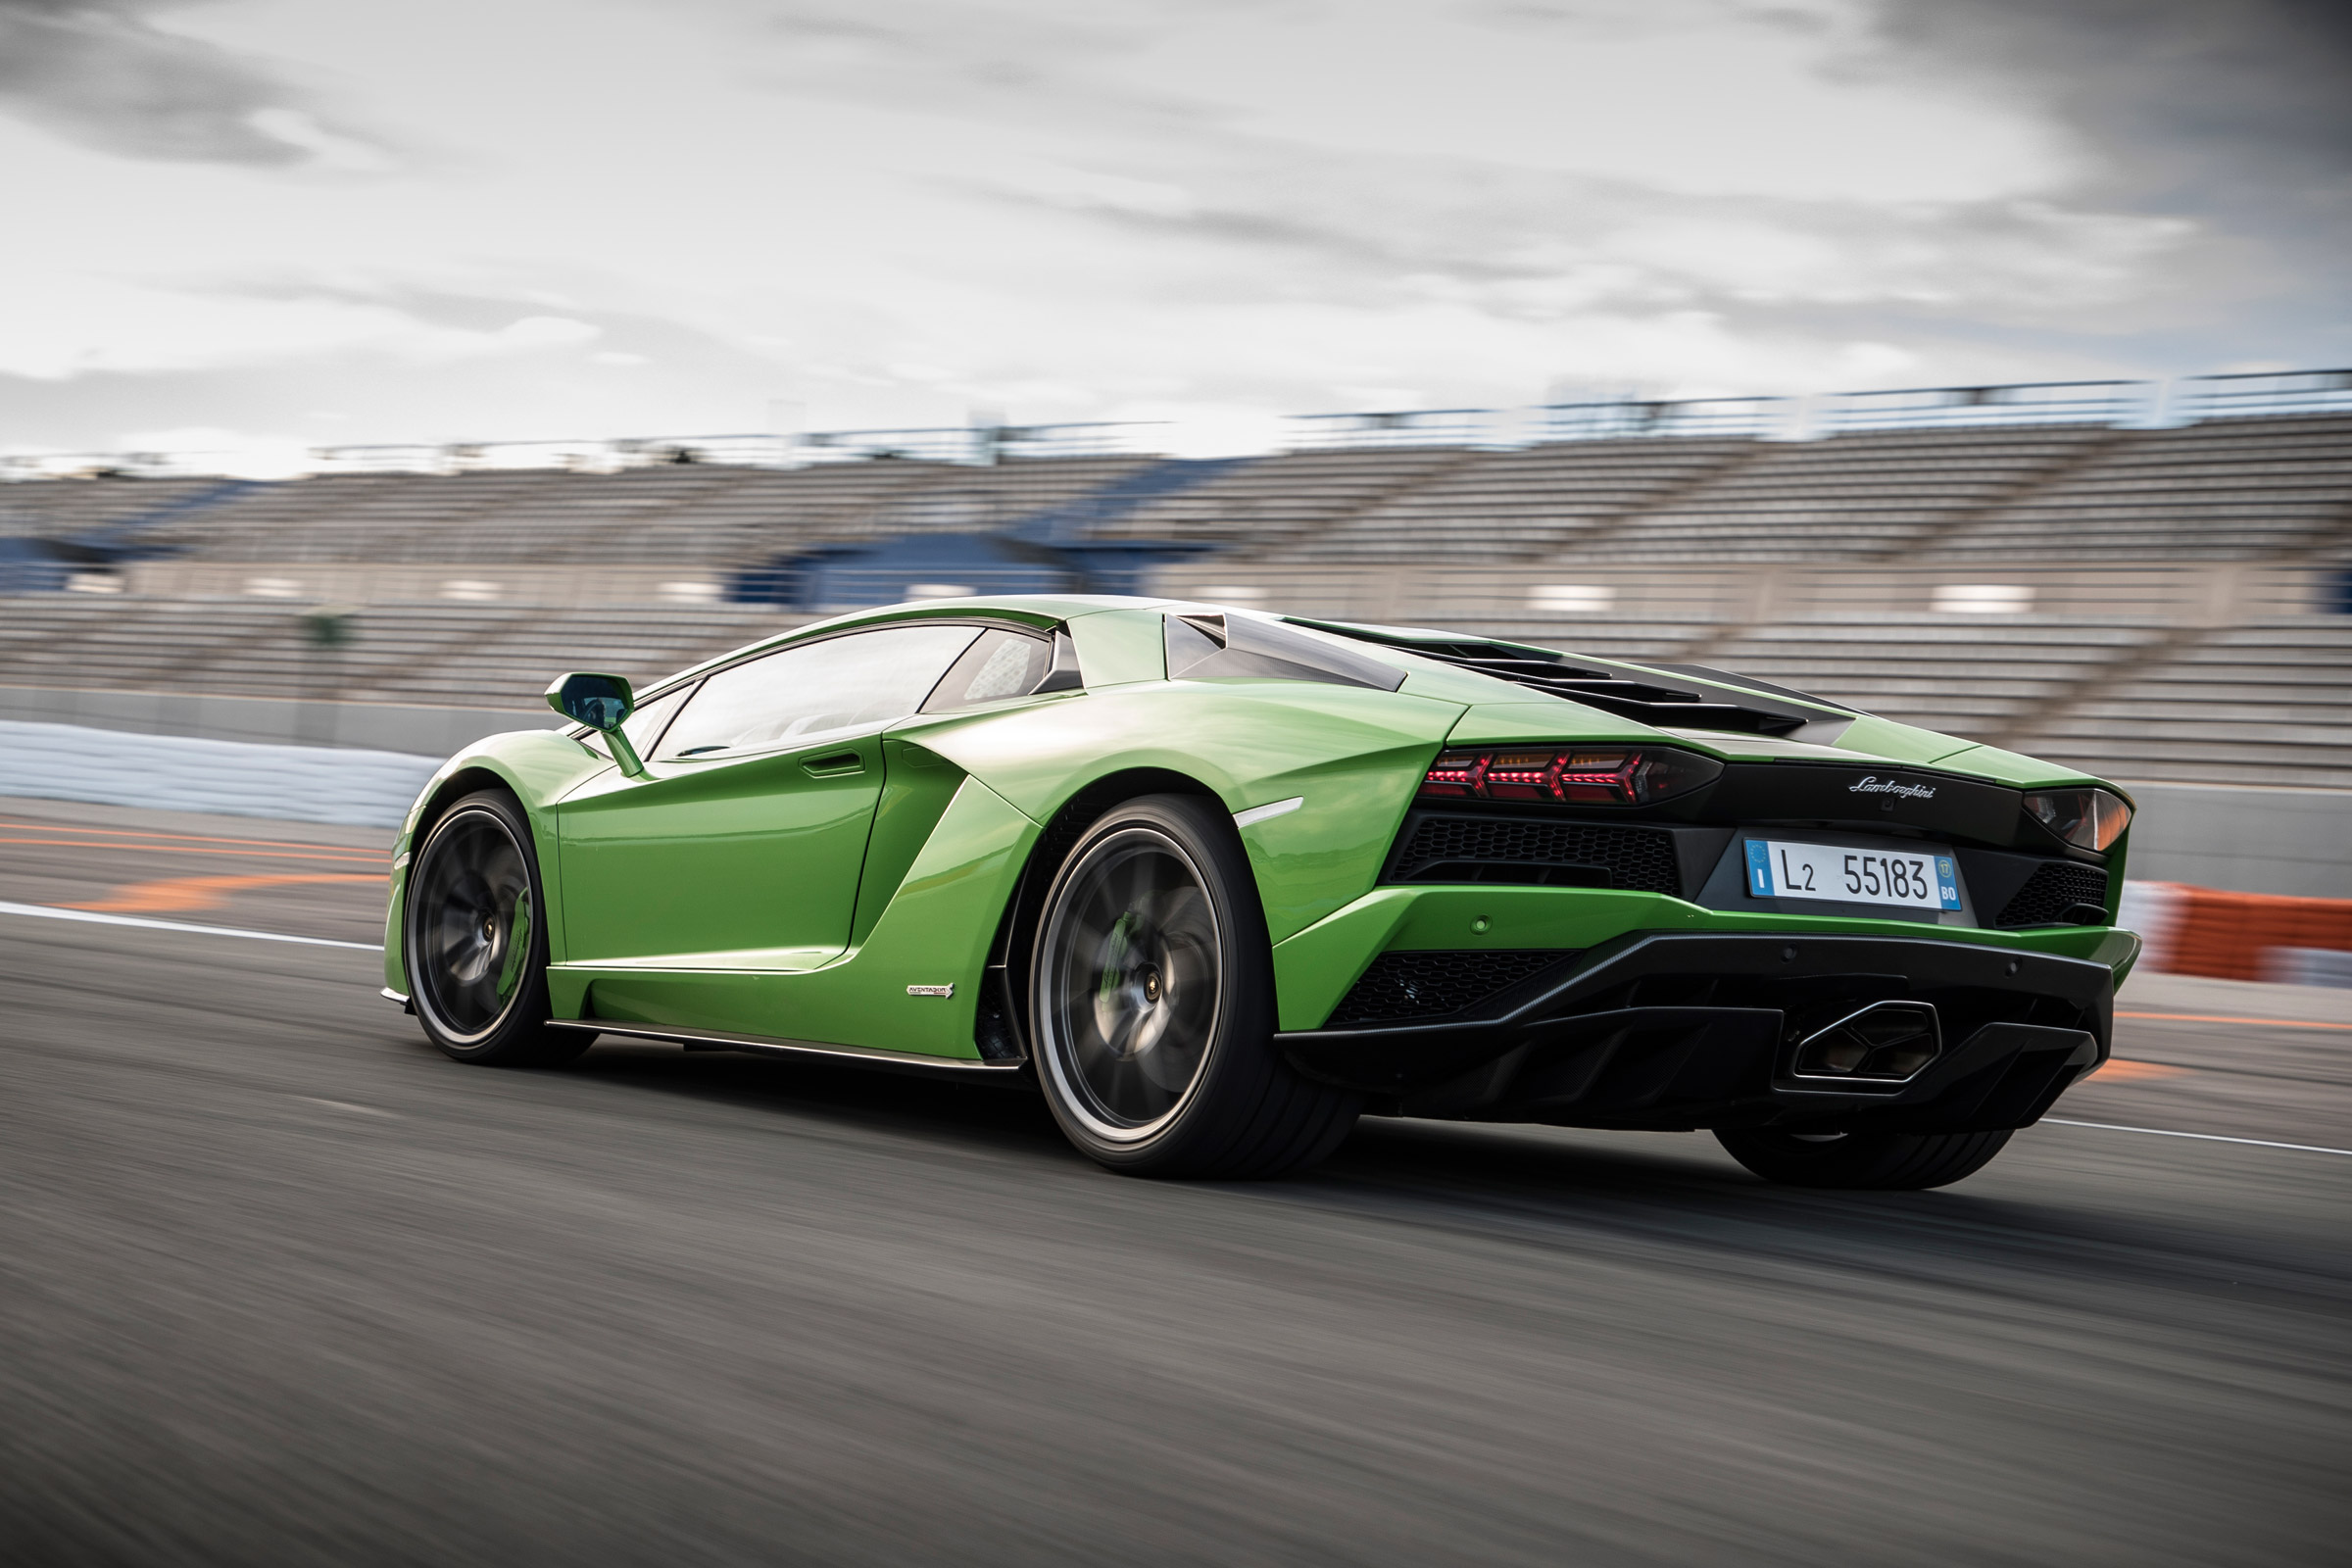 2017 Lamborghini Aventador S Circuit Test Rear View (Photo 4 of 20)